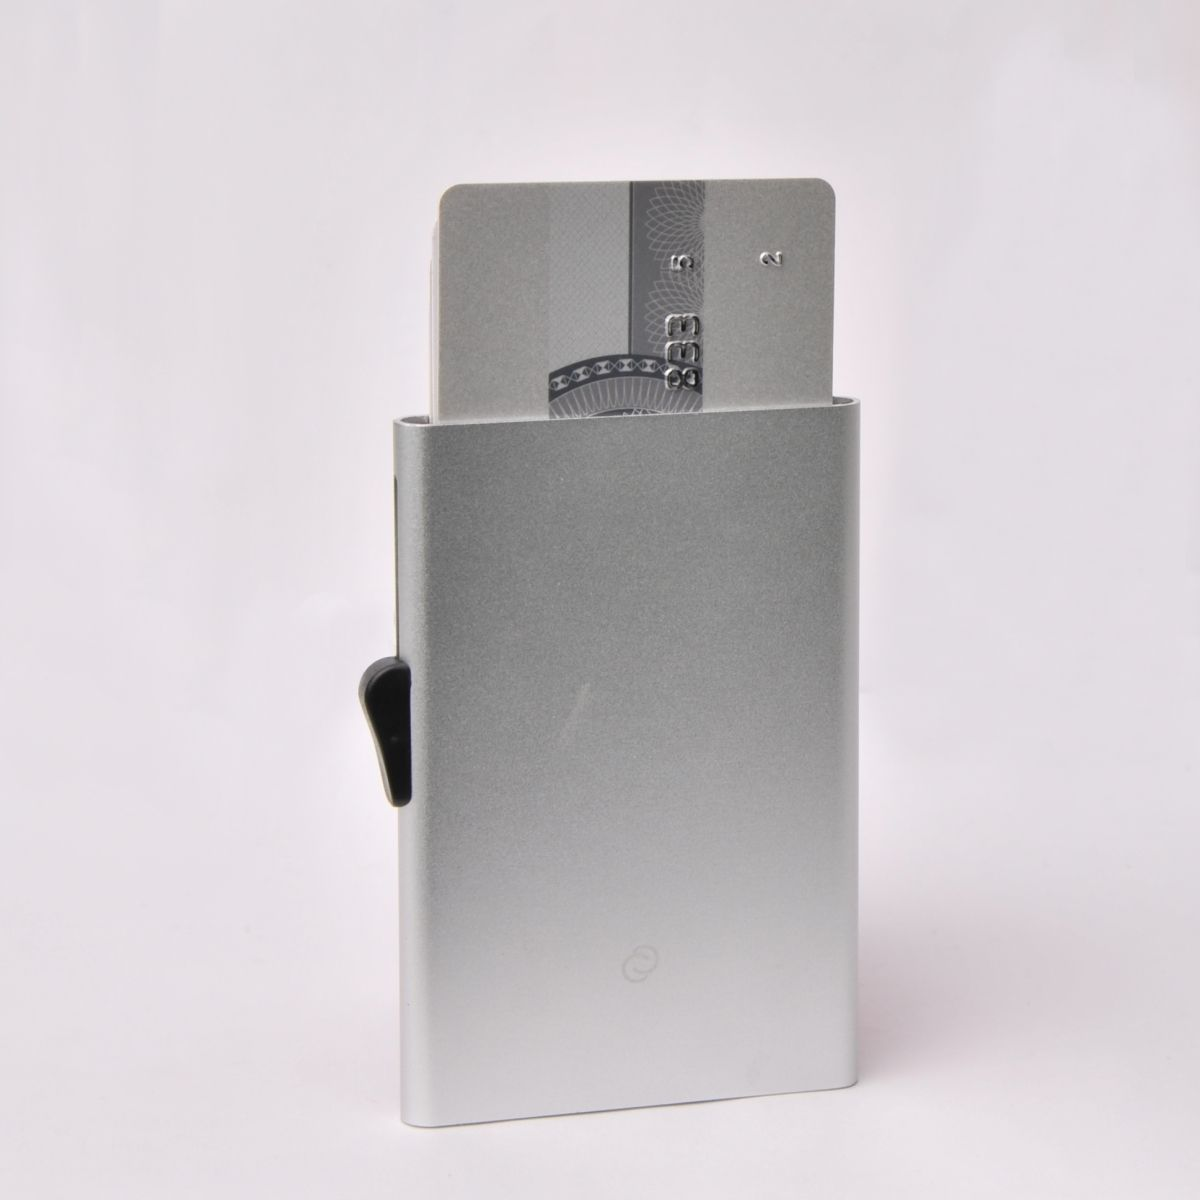 C-Secure Slim Aluminum Card Holder with Money Clip - Silver